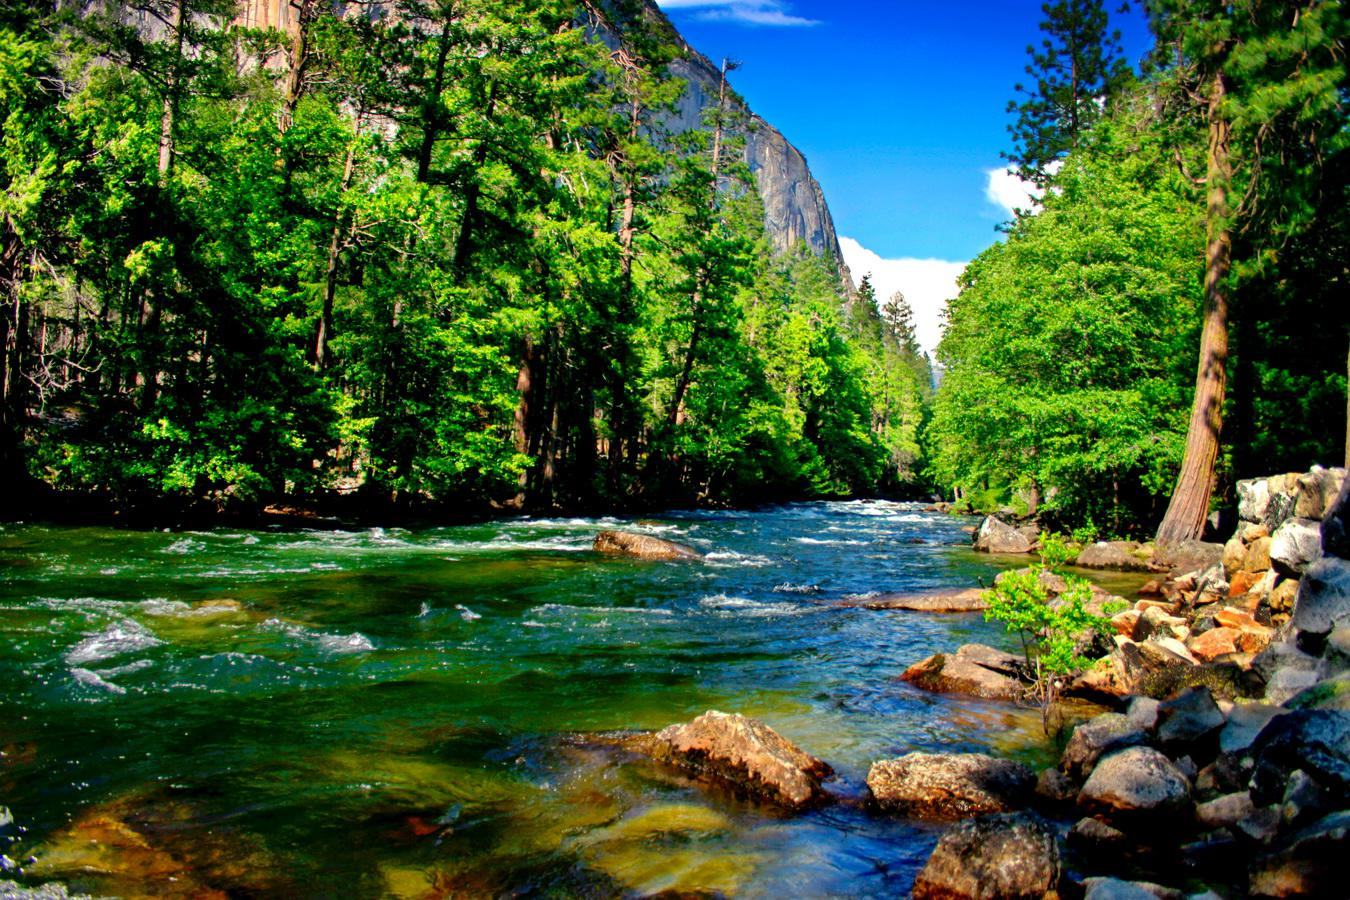 Mountain river   149185   High Quality and Resolution Wallpapers on 1350x900